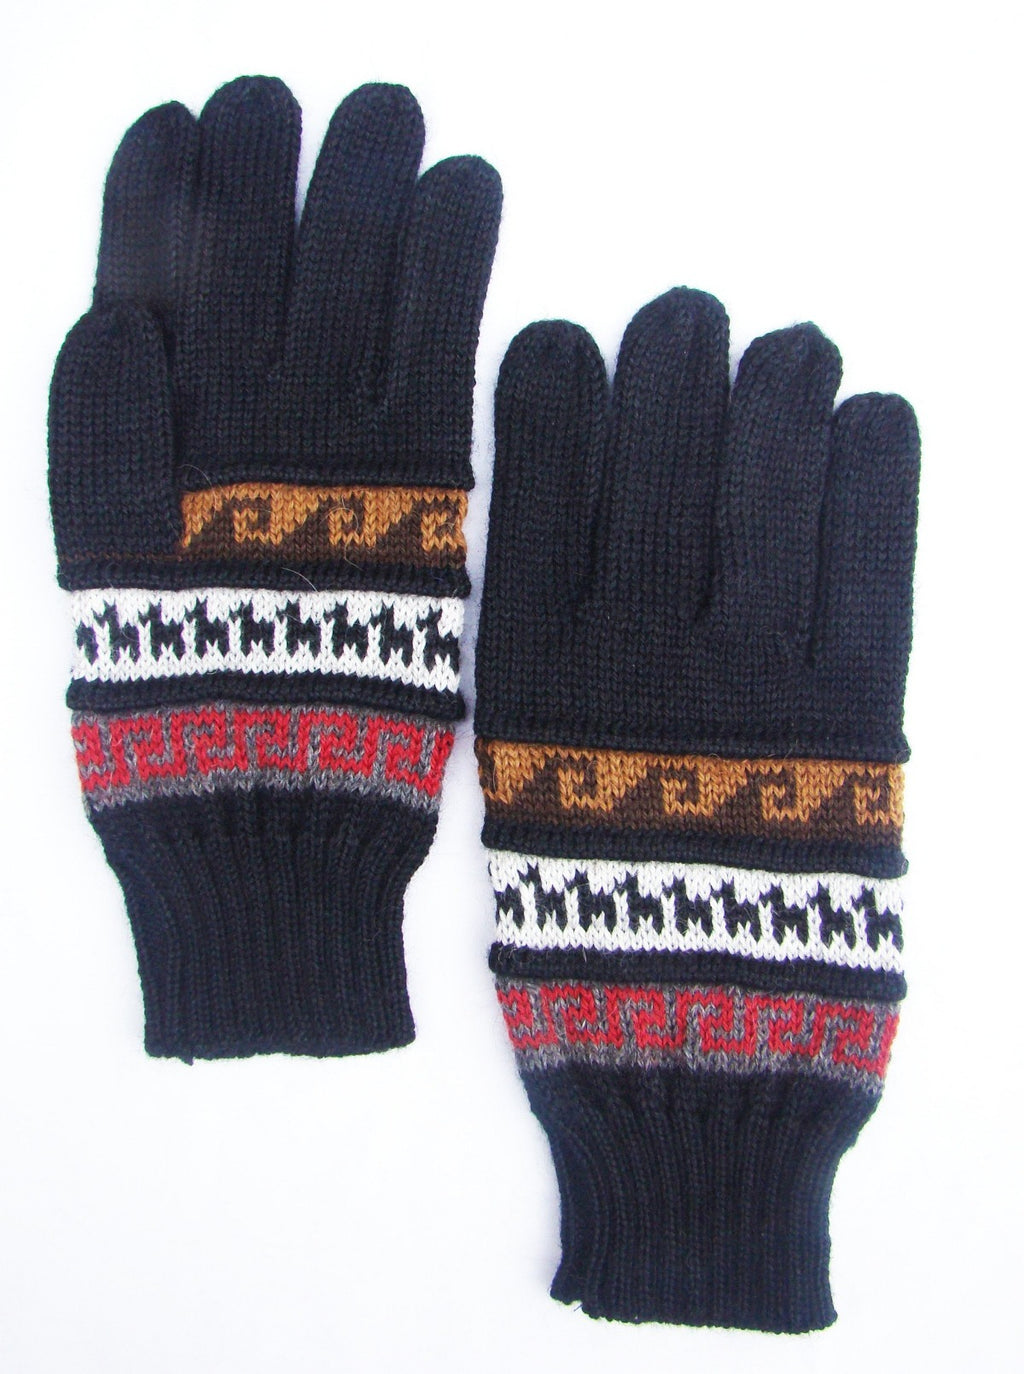 Hand Knitted Alpaca Blend Geometric Design Gloves (7 Colors EDG407)